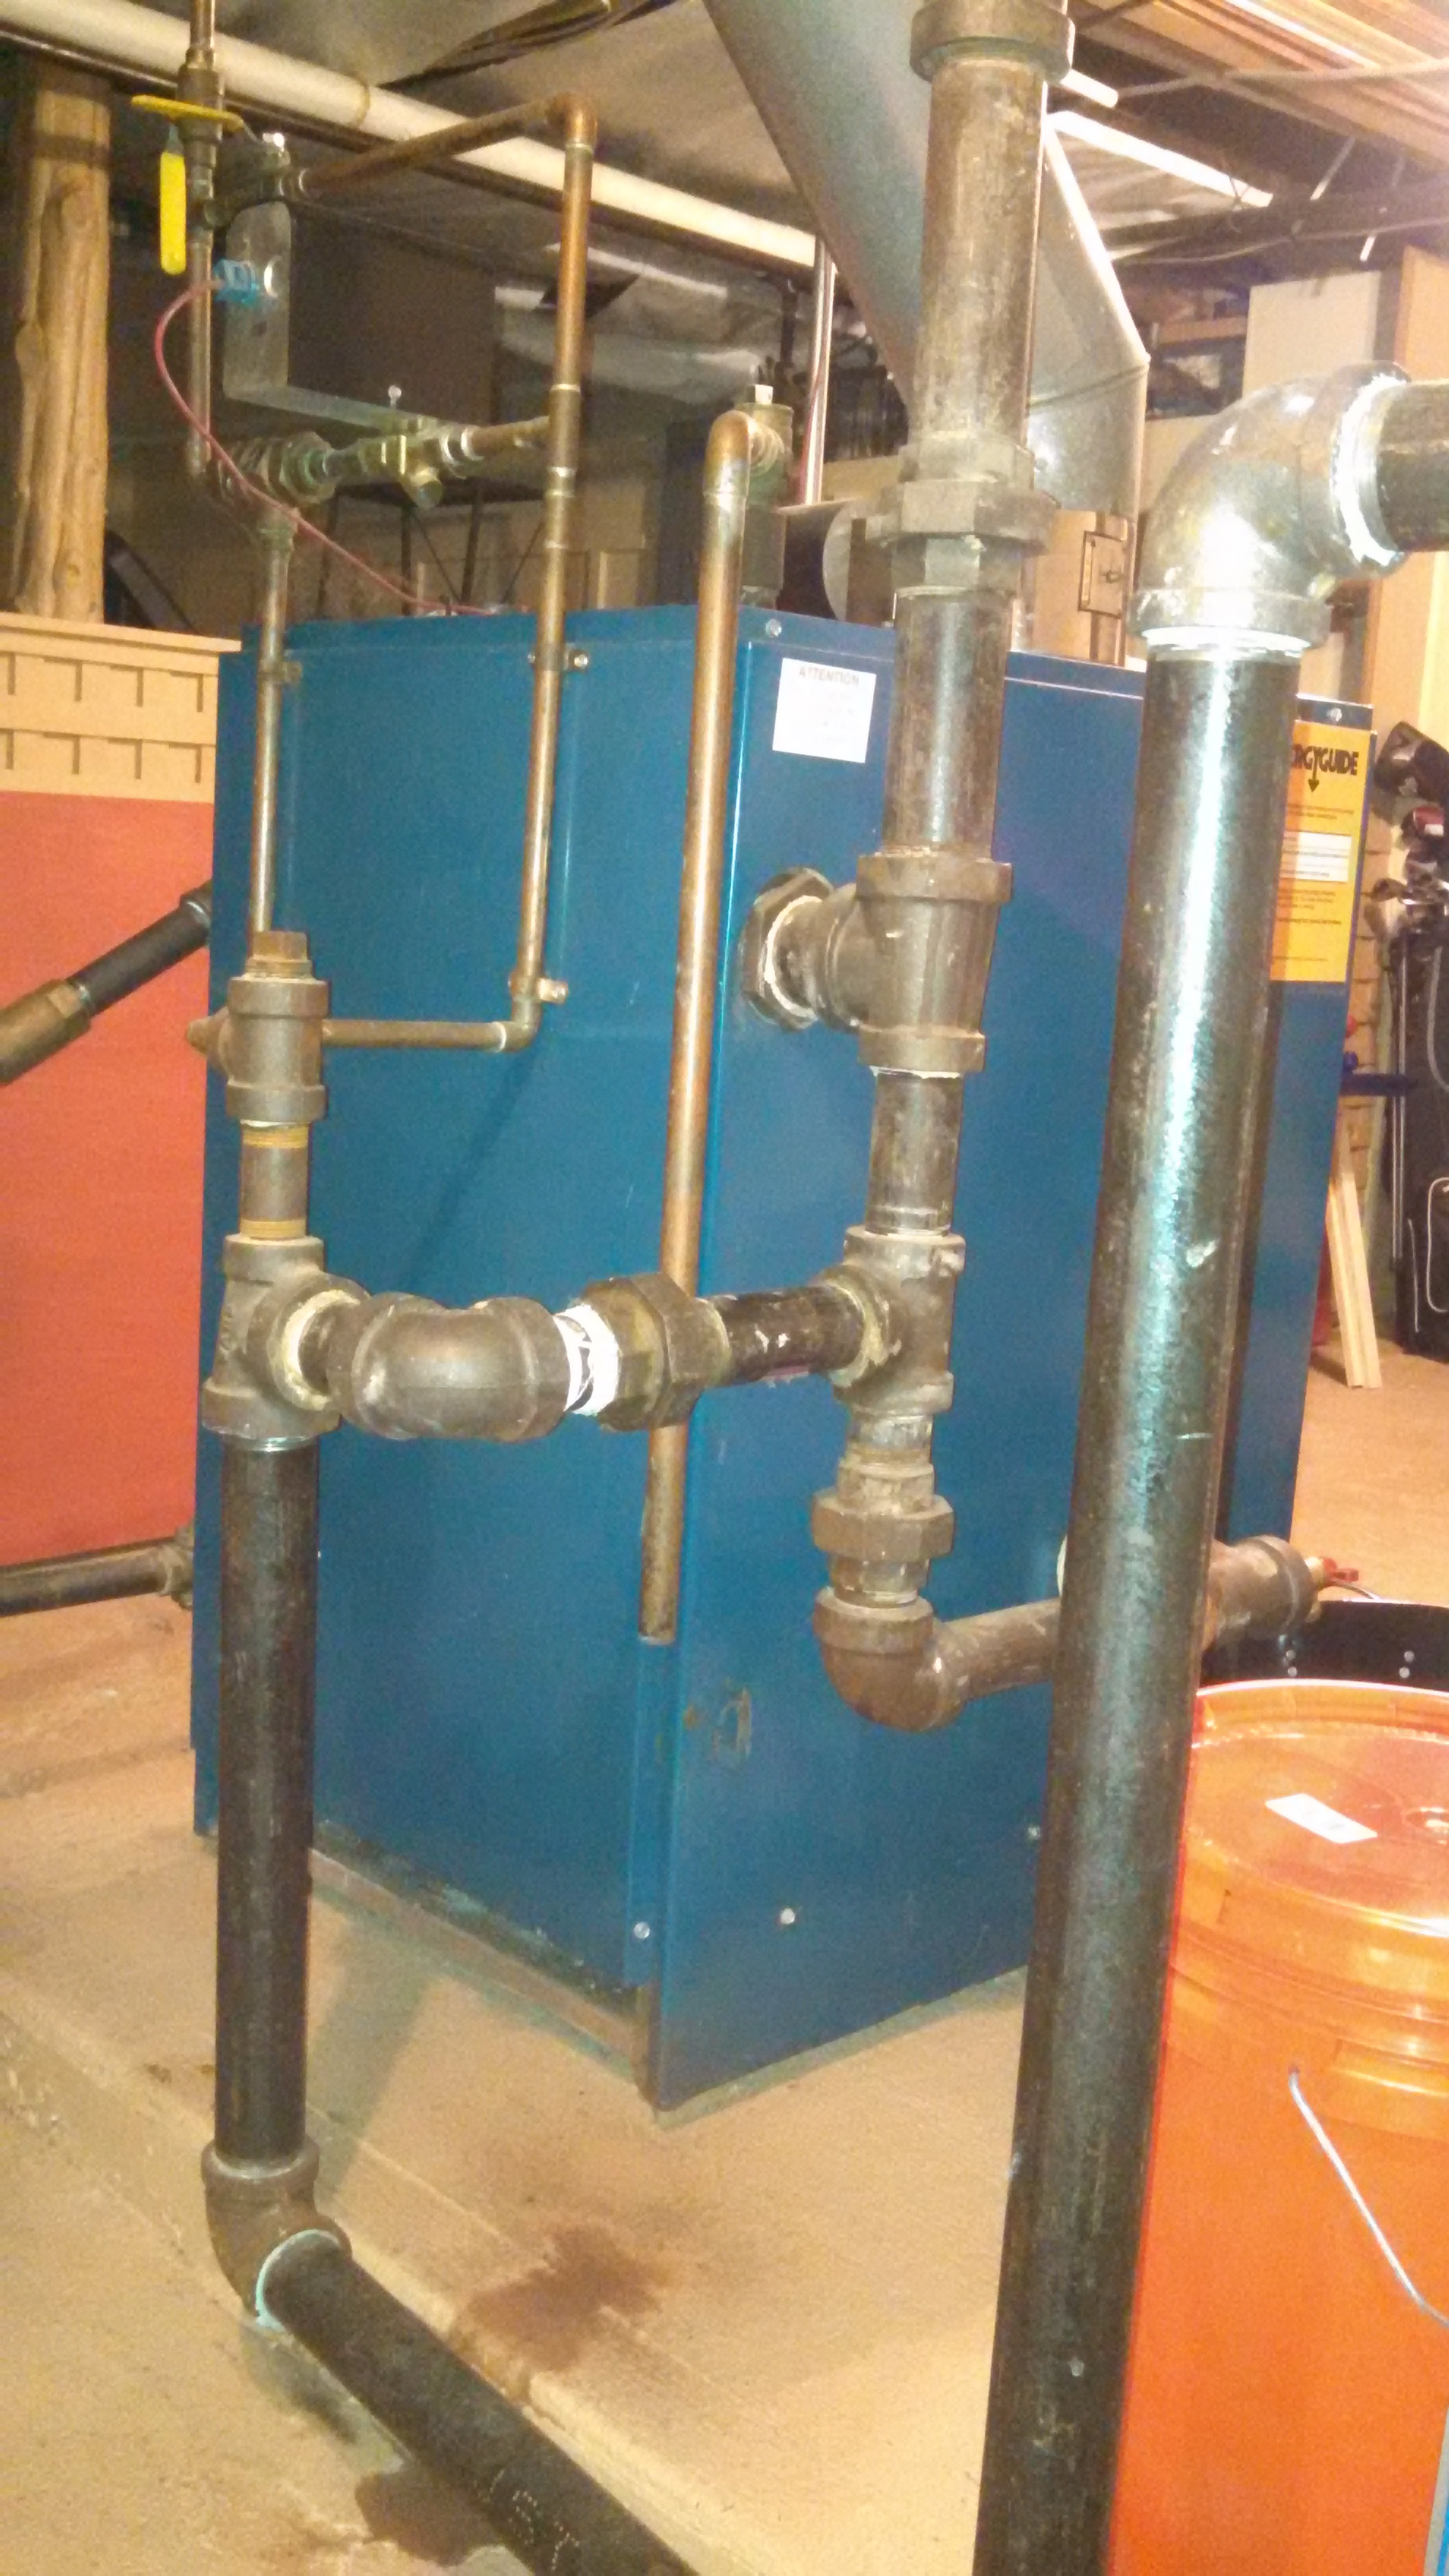 Pictures of near boiler piping. Water hammer and pressure reading at ...